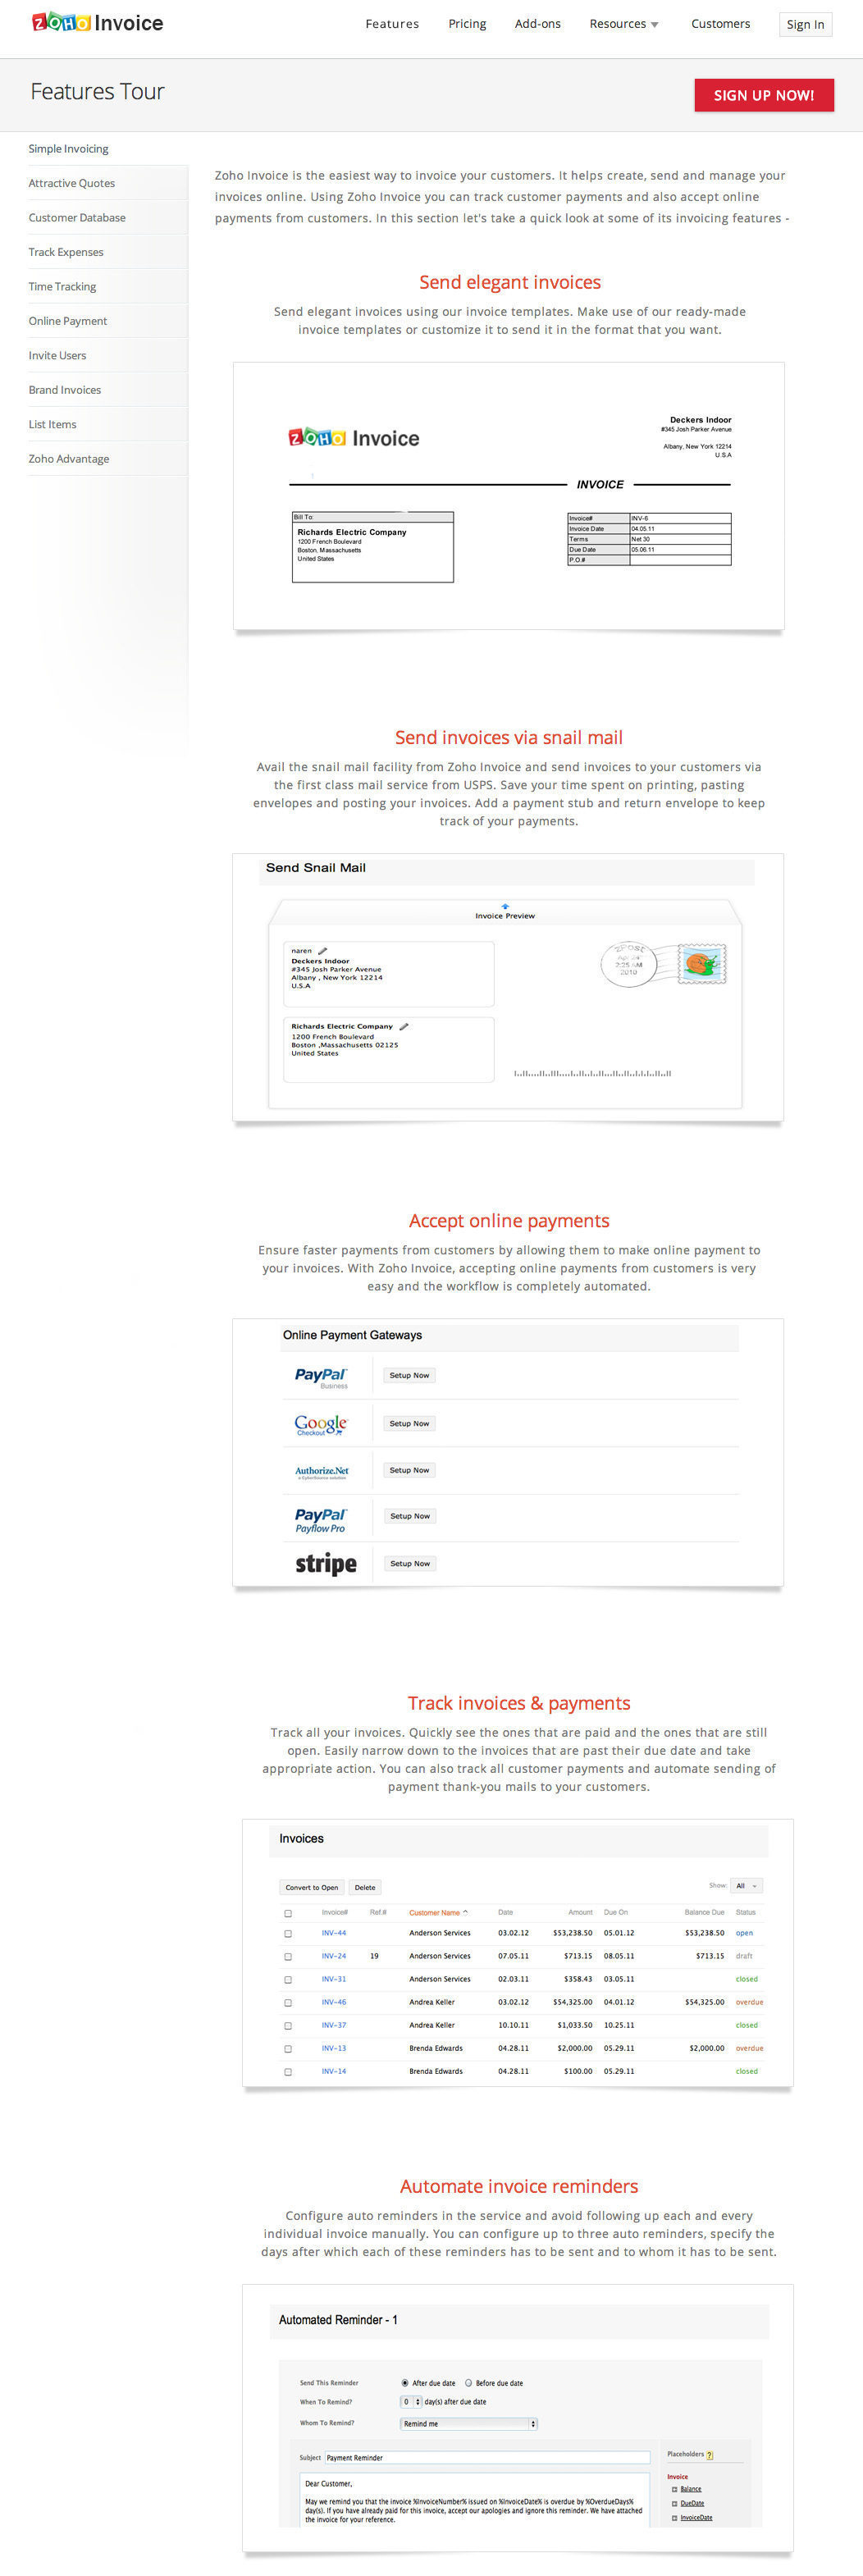 Garygrubbsus  Seductive Top  Complaints And Reviews About Zoho Invoice With Exciting Zoho Invoice Pricing Zoho Invoice  Simple Invoicing  With Adorable Einvoicing Solutions Also Sample Invoice For Professional Services In Addition Sending Invoice On Paypal And Fresh Invoice As Well As Free Downloadable Invoice Templates Additionally Print An Invoice From Consumeraffairscom With Garygrubbsus  Exciting Top  Complaints And Reviews About Zoho Invoice With Adorable Zoho Invoice Pricing Zoho Invoice  Simple Invoicing  And Seductive Einvoicing Solutions Also Sample Invoice For Professional Services In Addition Sending Invoice On Paypal From Consumeraffairscom